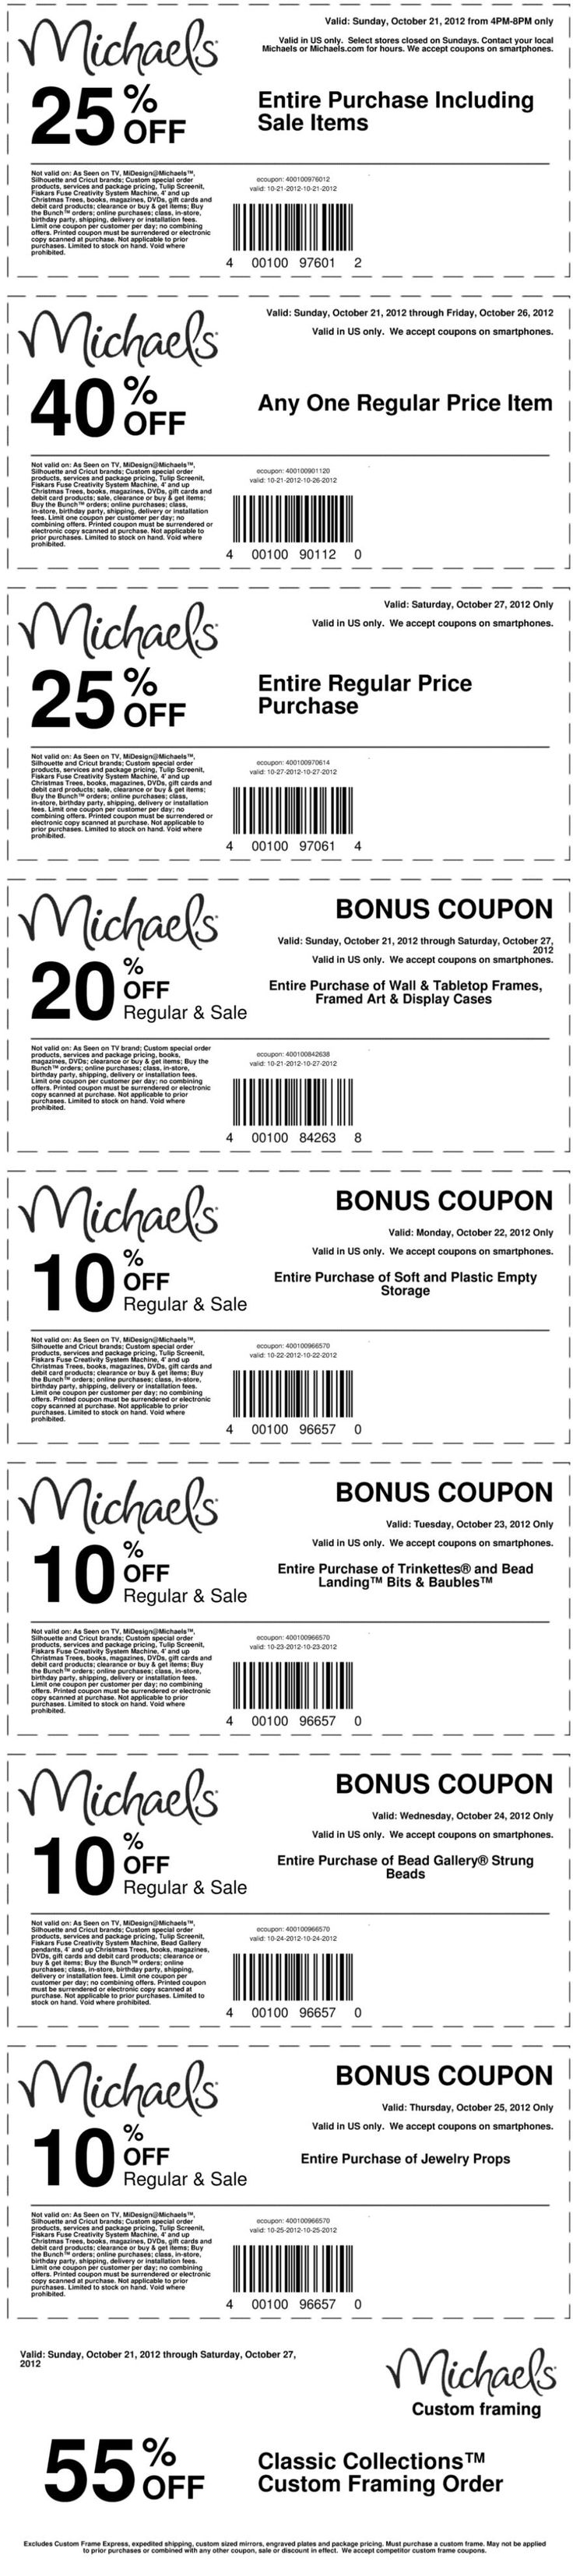 Joanns coupons app : Alaska airlines coupons 2018